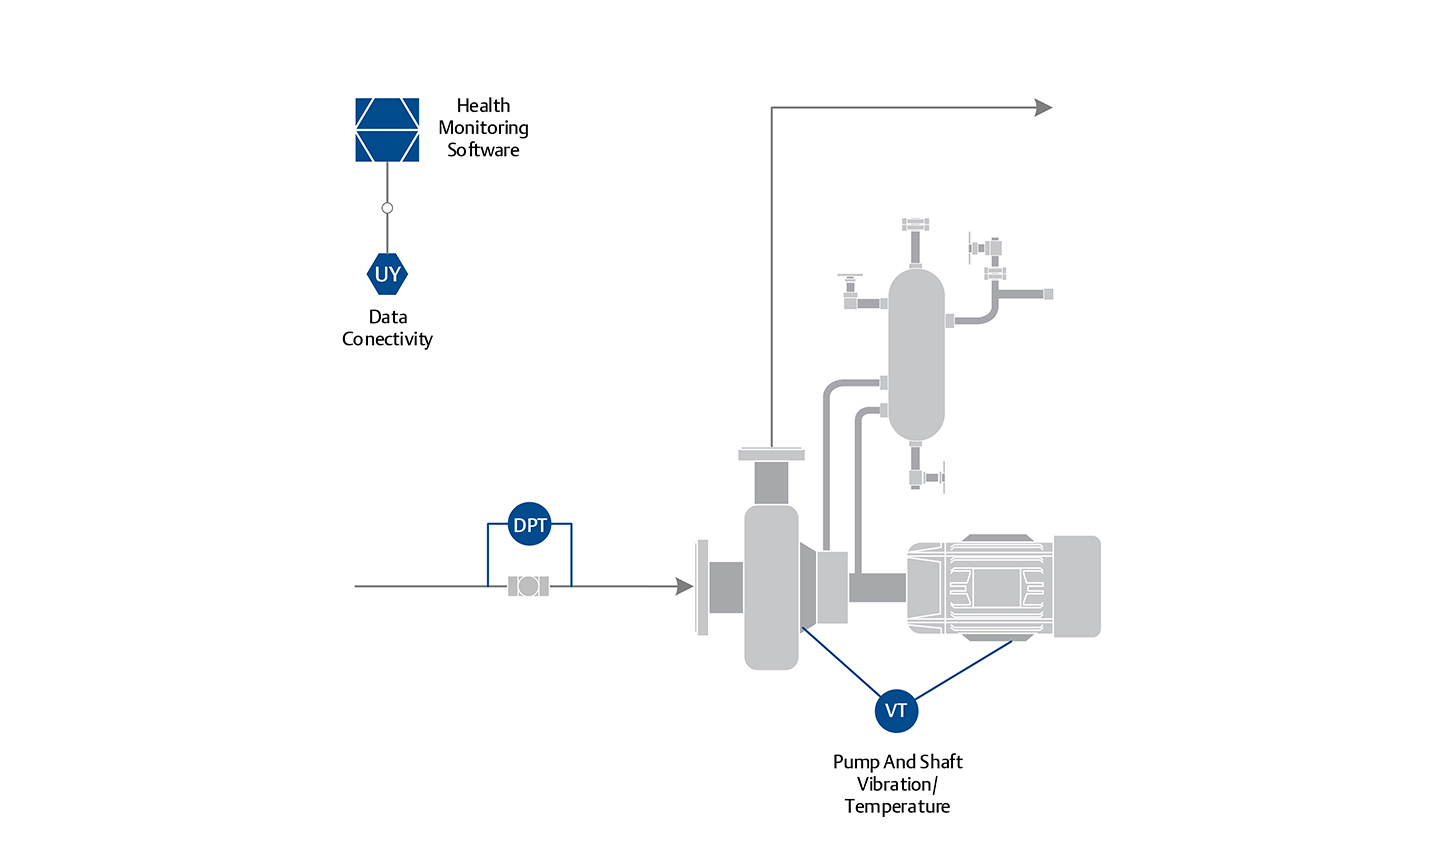 ... differential pressure transmitters can detect flow restriction and  provide timely alerts so the problem can be corrected without damage to the  pump.